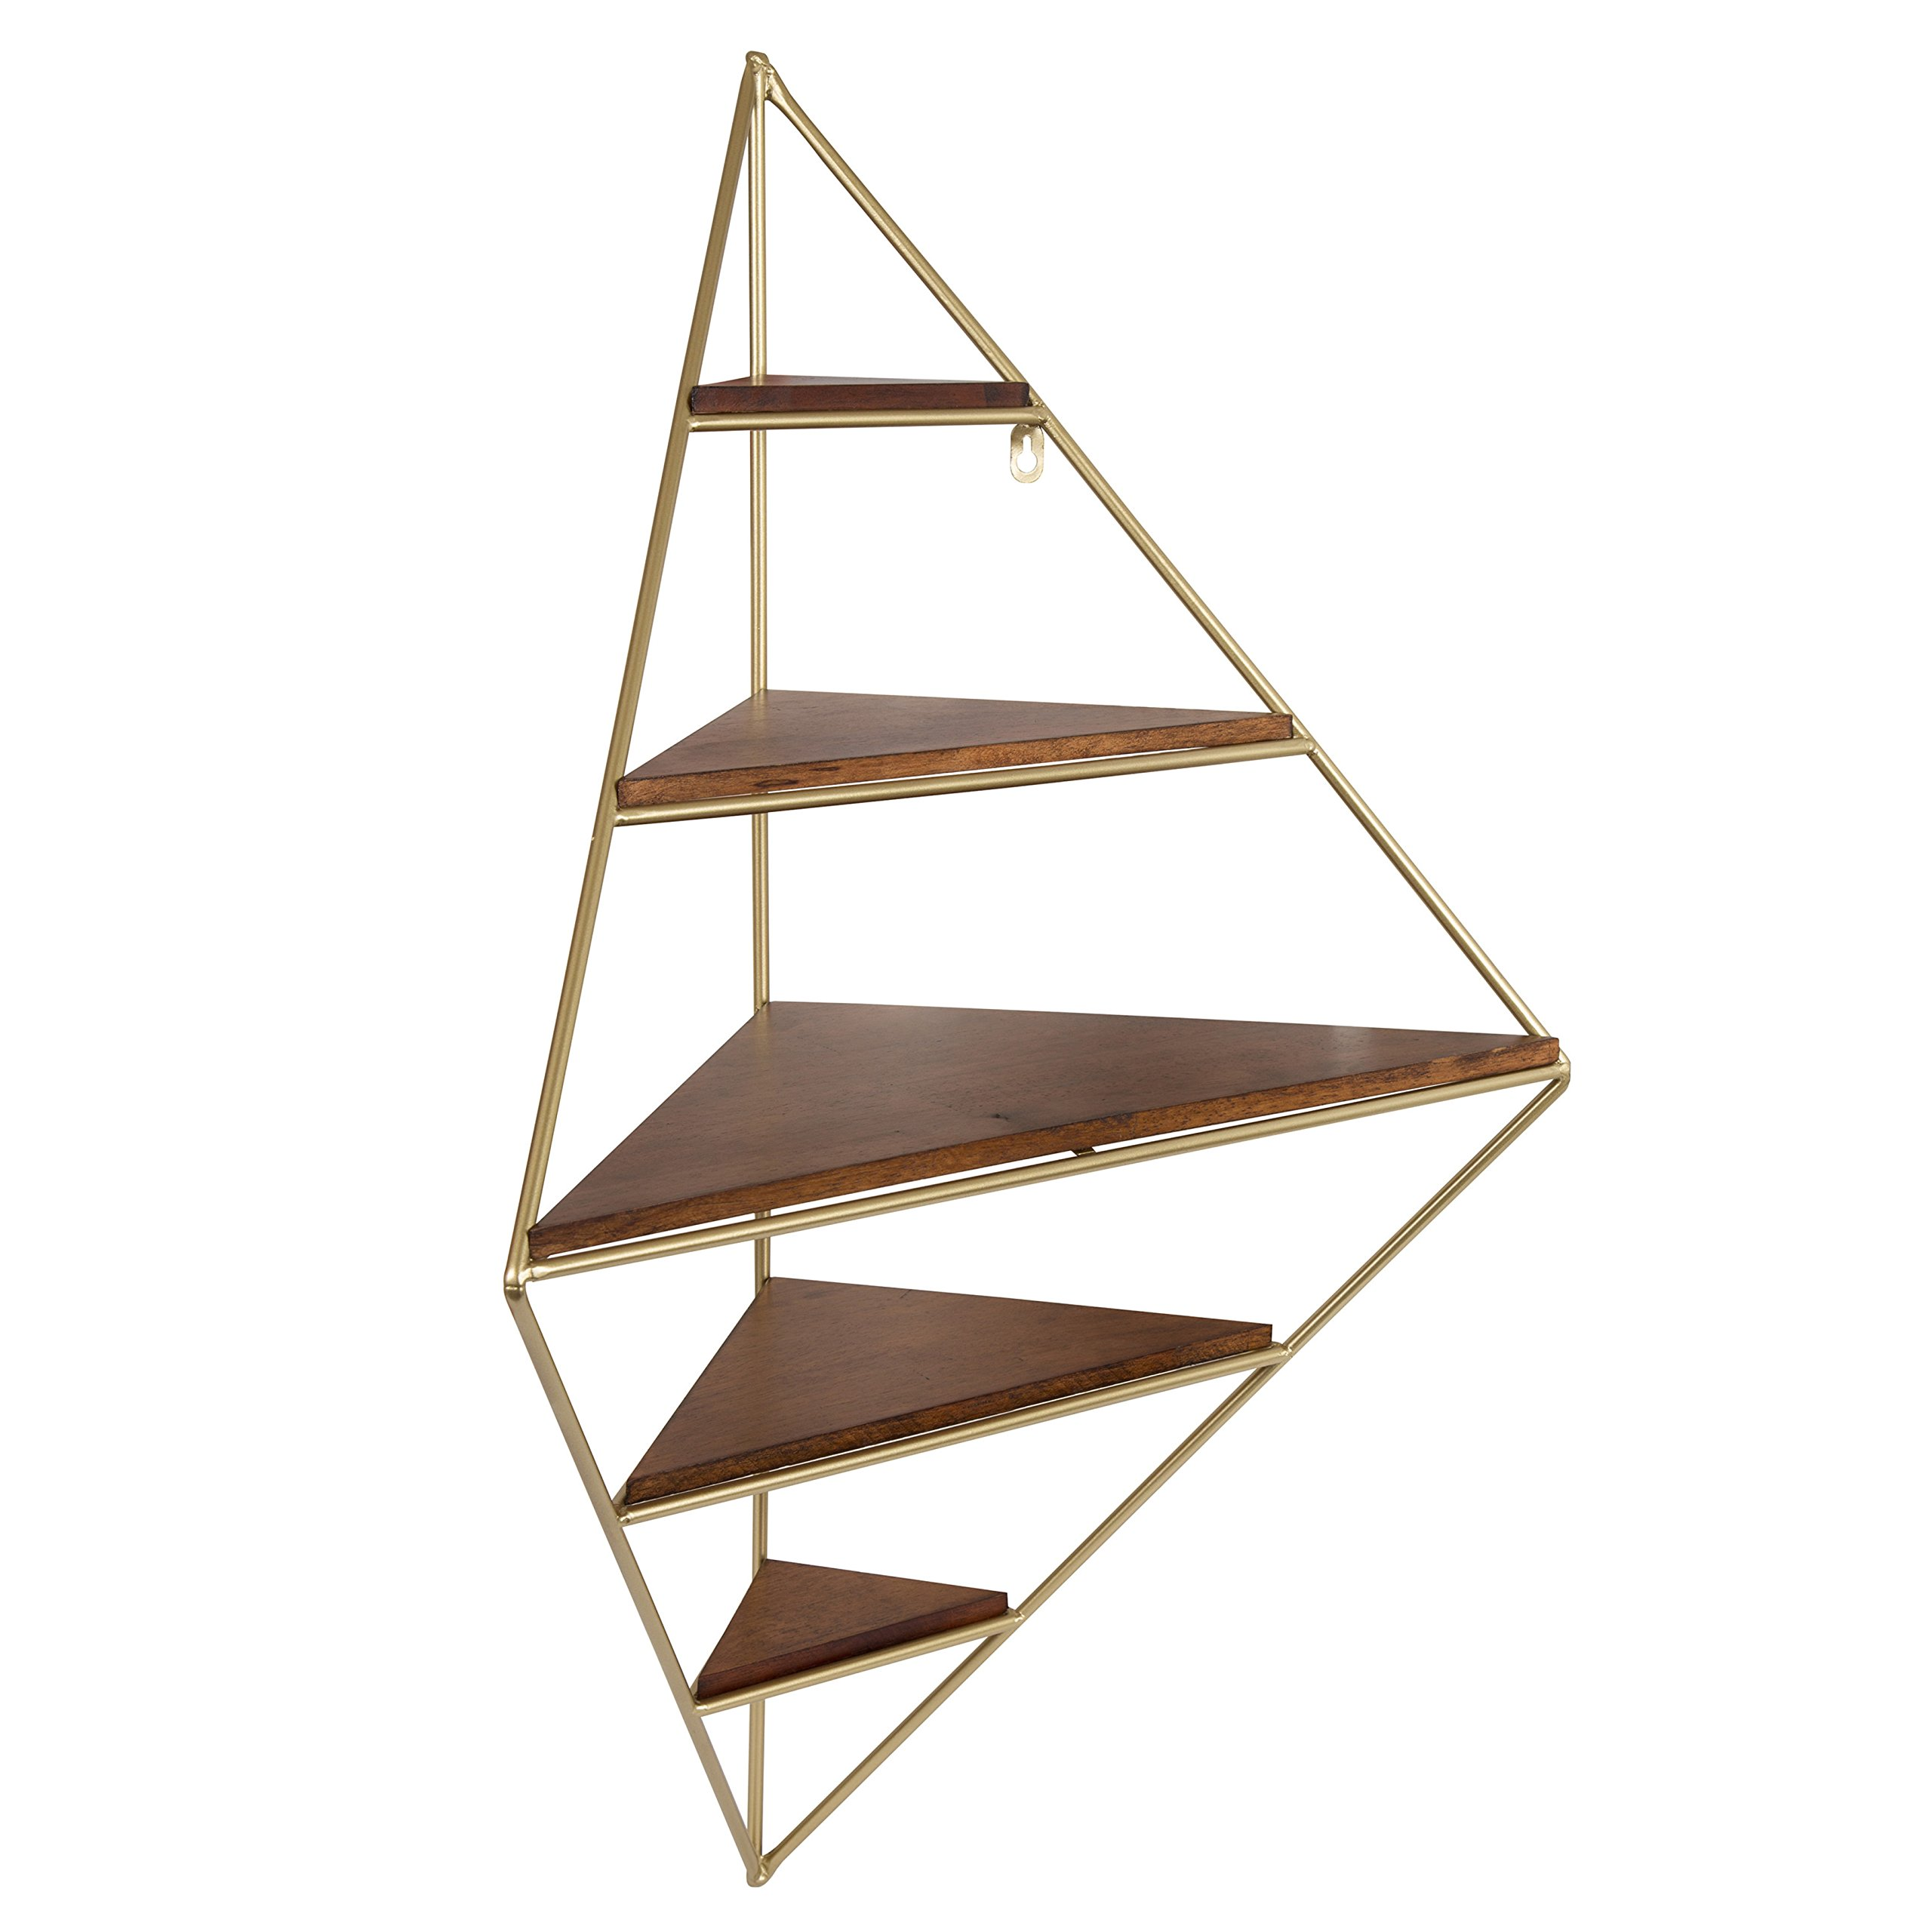 Kate and Laurel 213056 Melora Decorative Mid Century Modern Corner Wall Shelf with Gold Frame and Solid Wood Shelves Walnut Finish 5